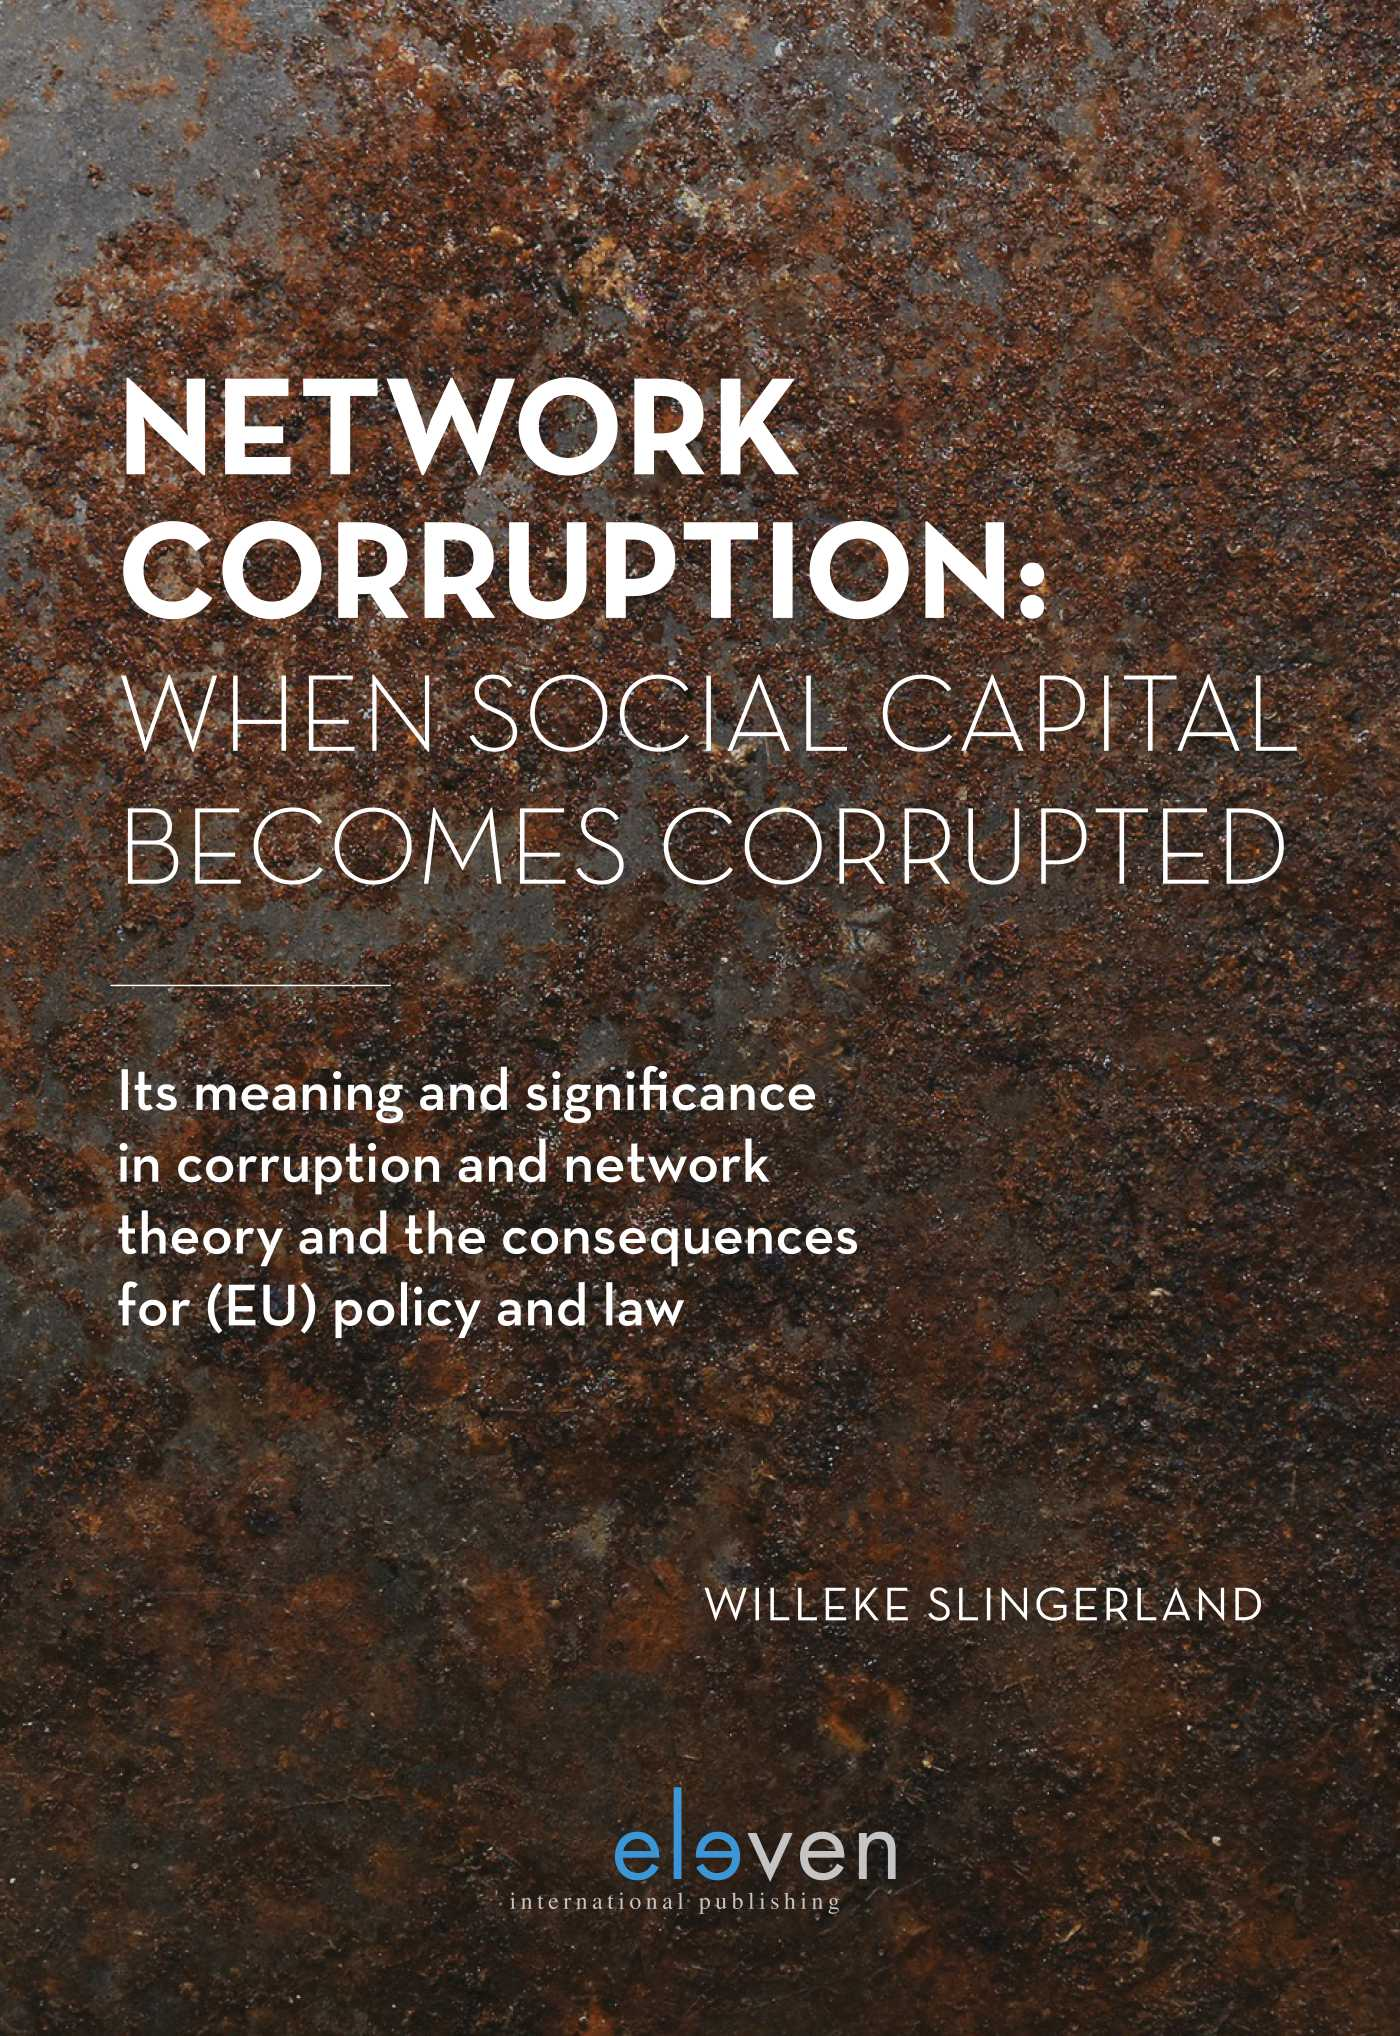 9789462368804-Network-Corruption-When-Social-Capital-Becomes-Corrupted